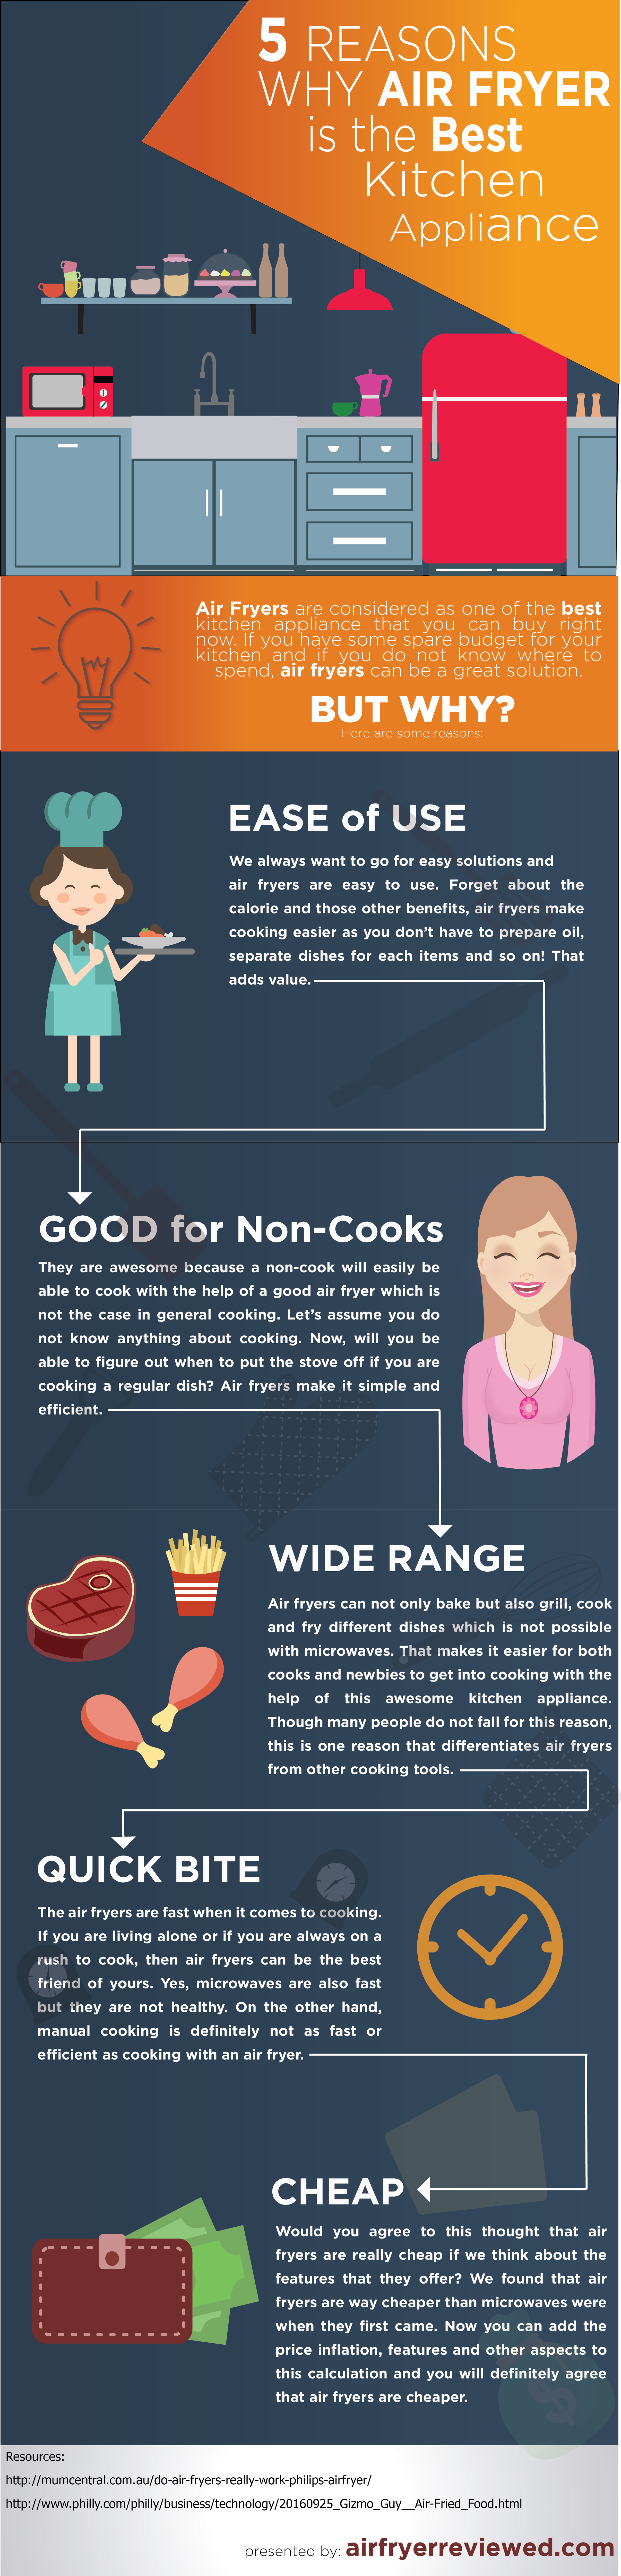 5 Reasons Why Air Fryer is the Best Kitchen Appliance